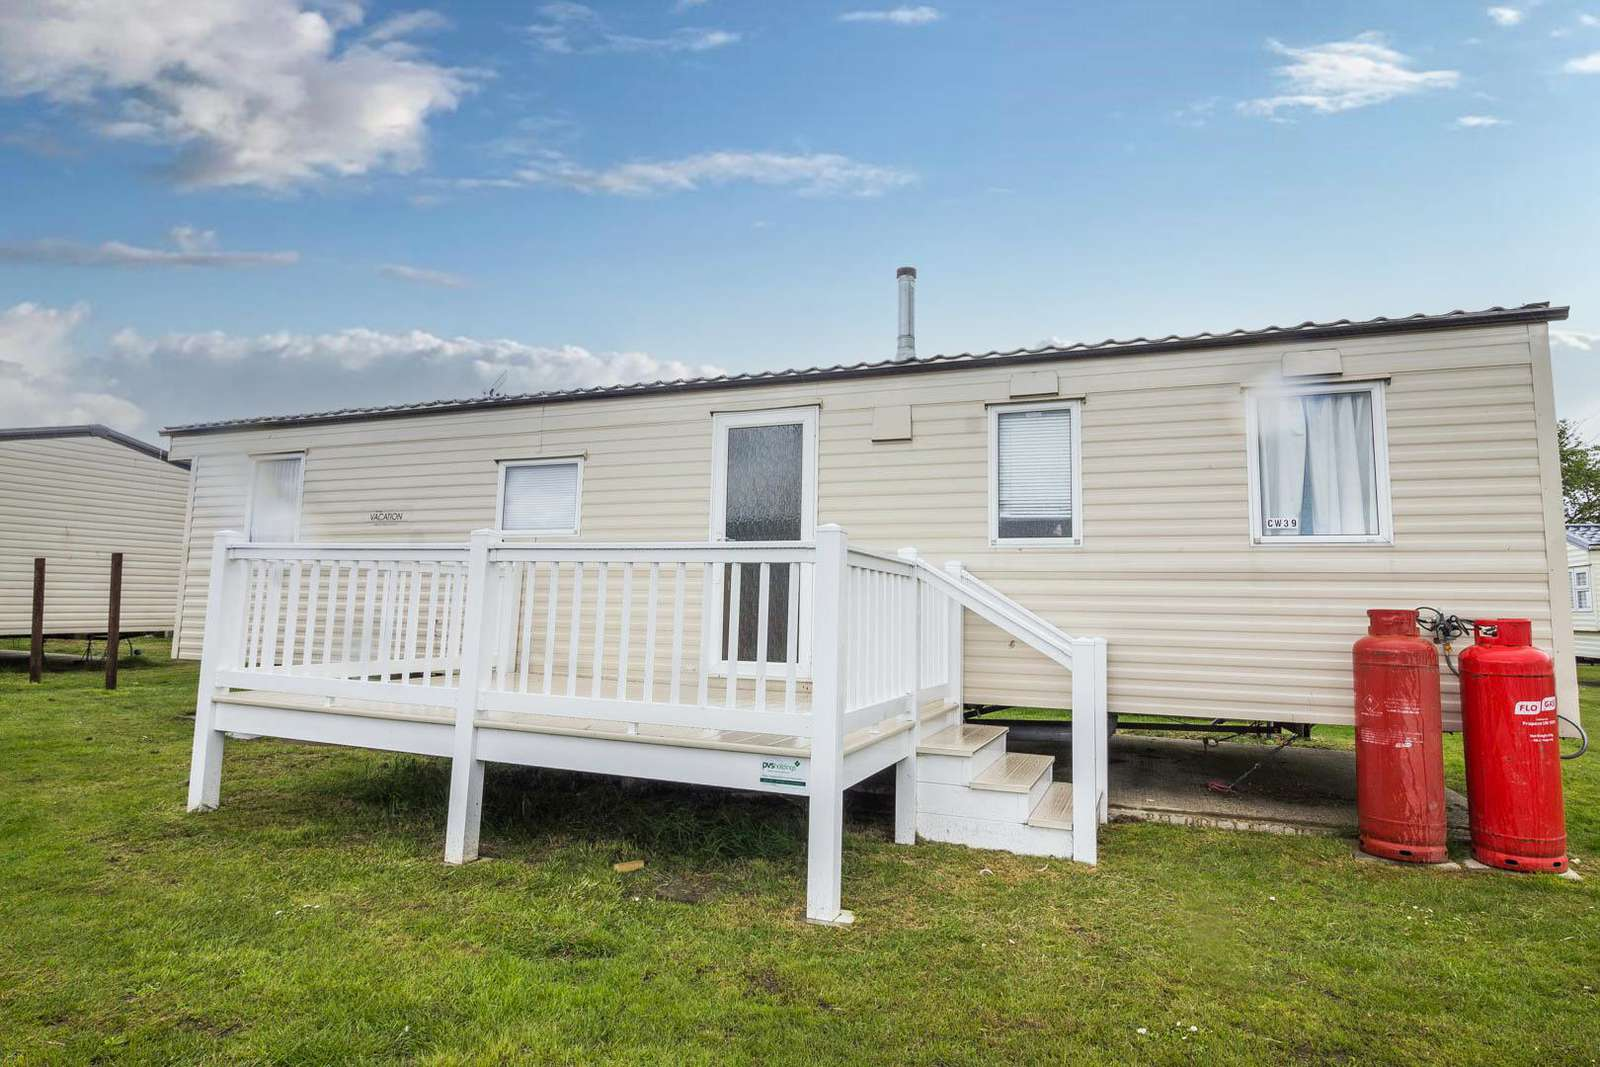 28039CW – Constable Way area, 3 bed, 8 berth caravan with decking. Emerald rated. - property